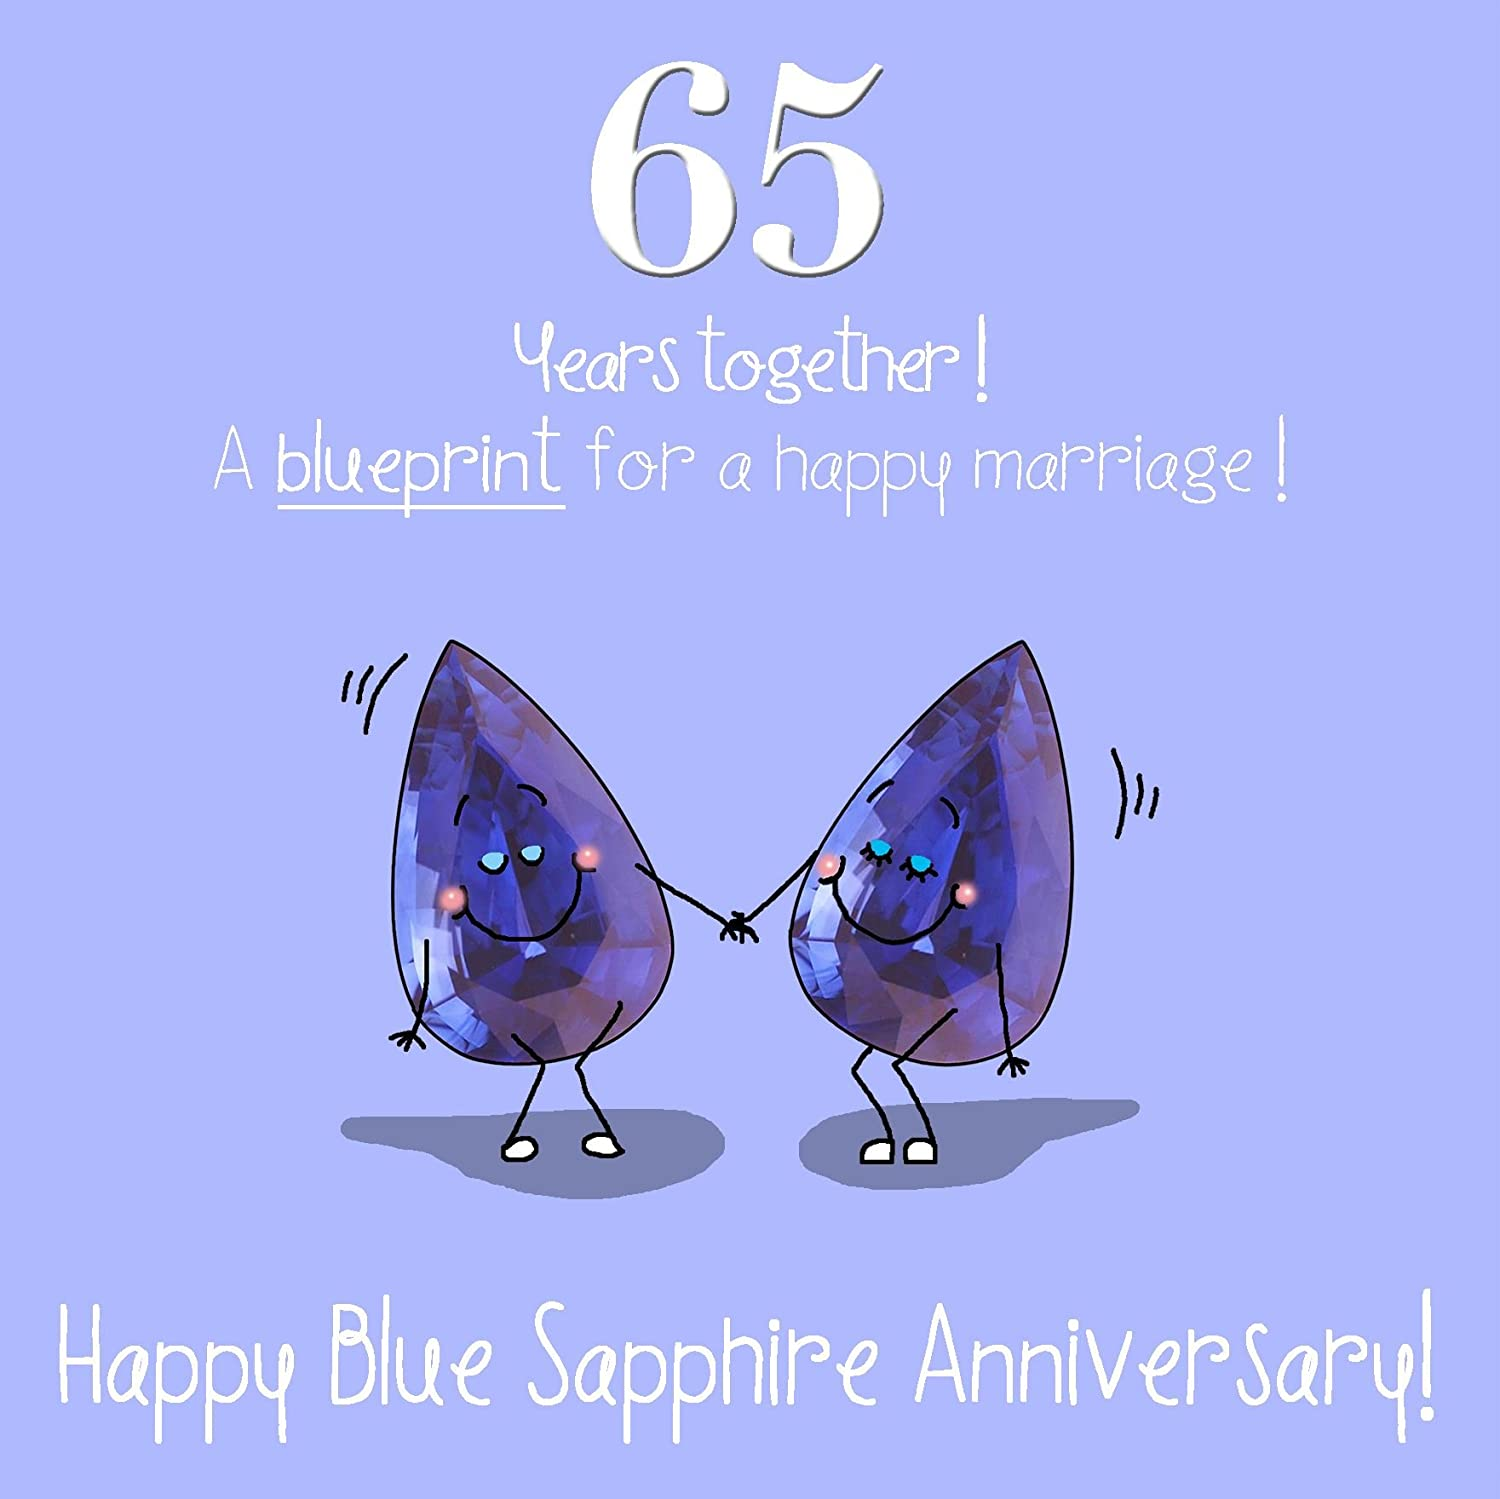 65th Wedding Anniversary Greetings Card - Blue Sapphire Anniversary Fax Potato